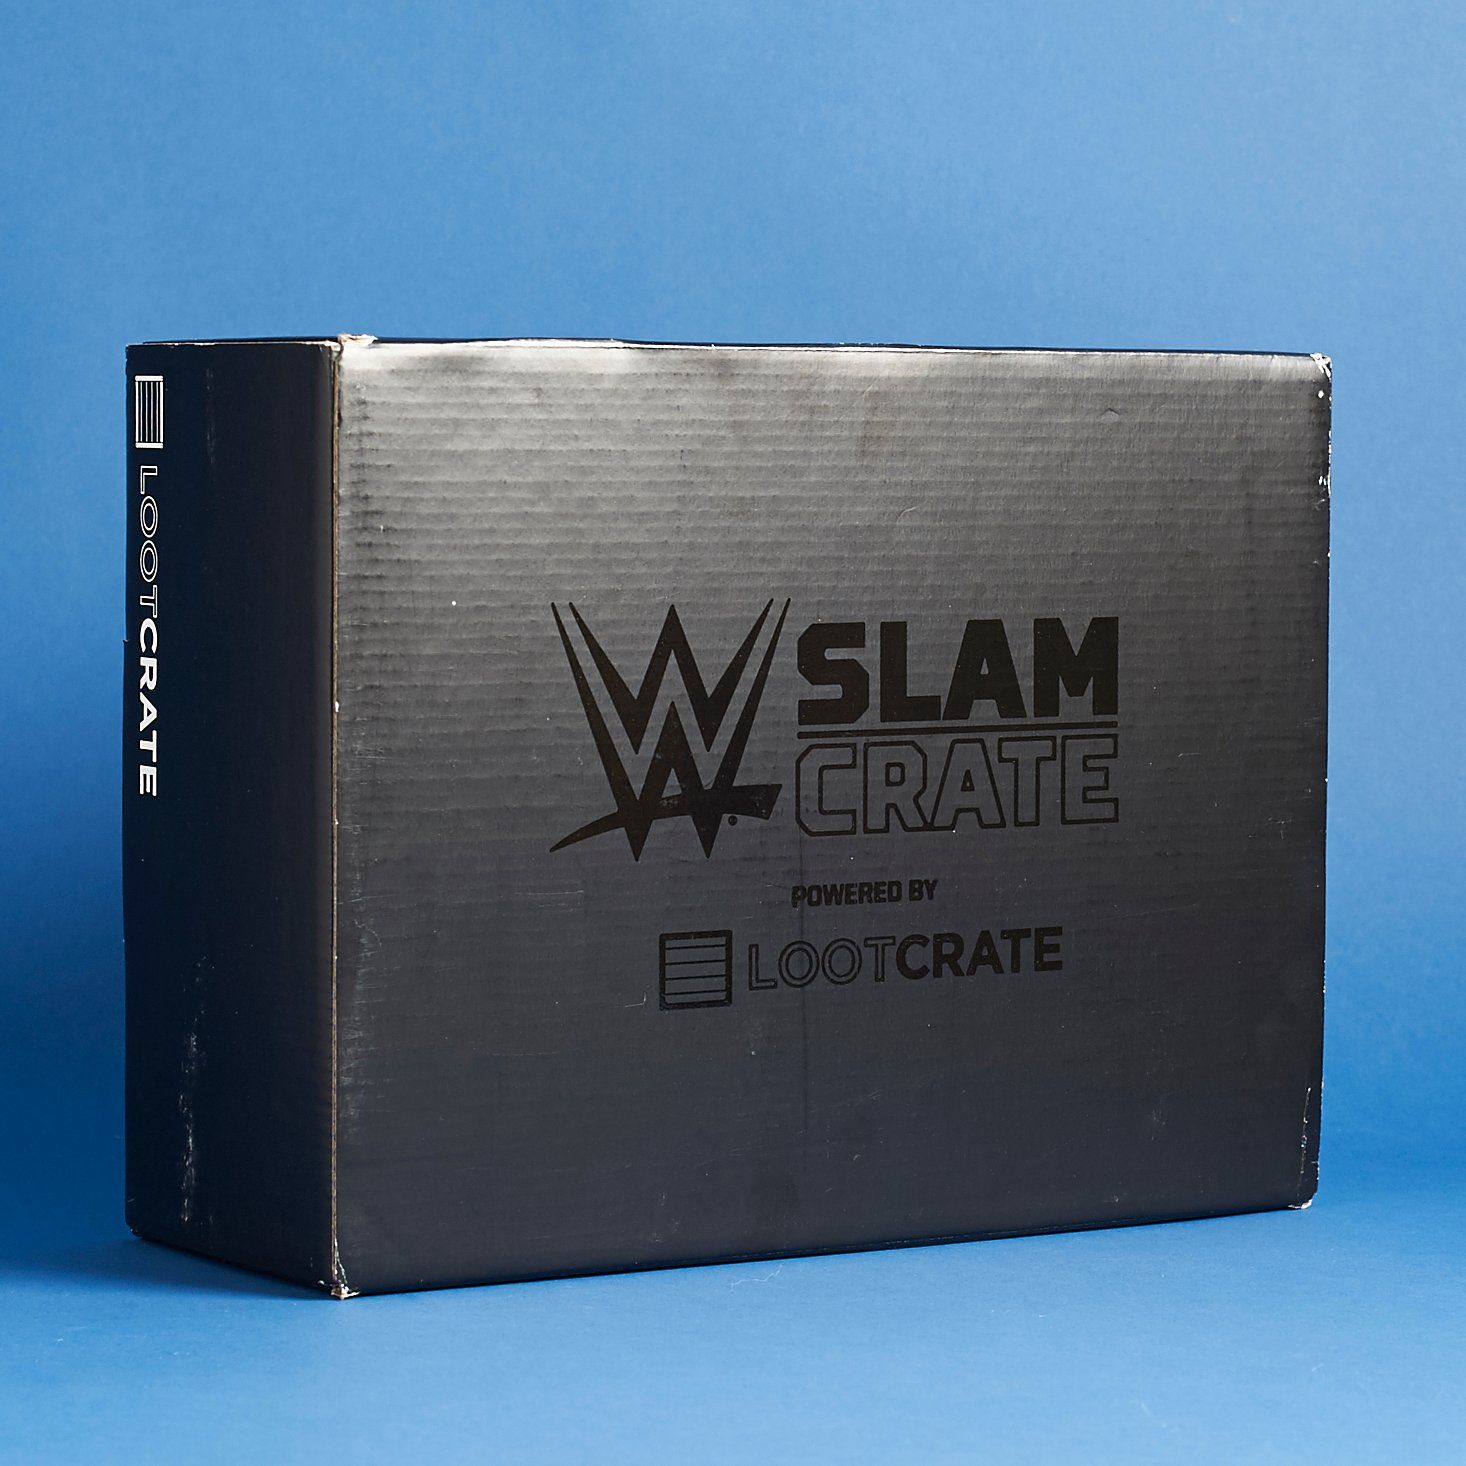 wwe-slam-crate-loot-crate-december-2016-0001